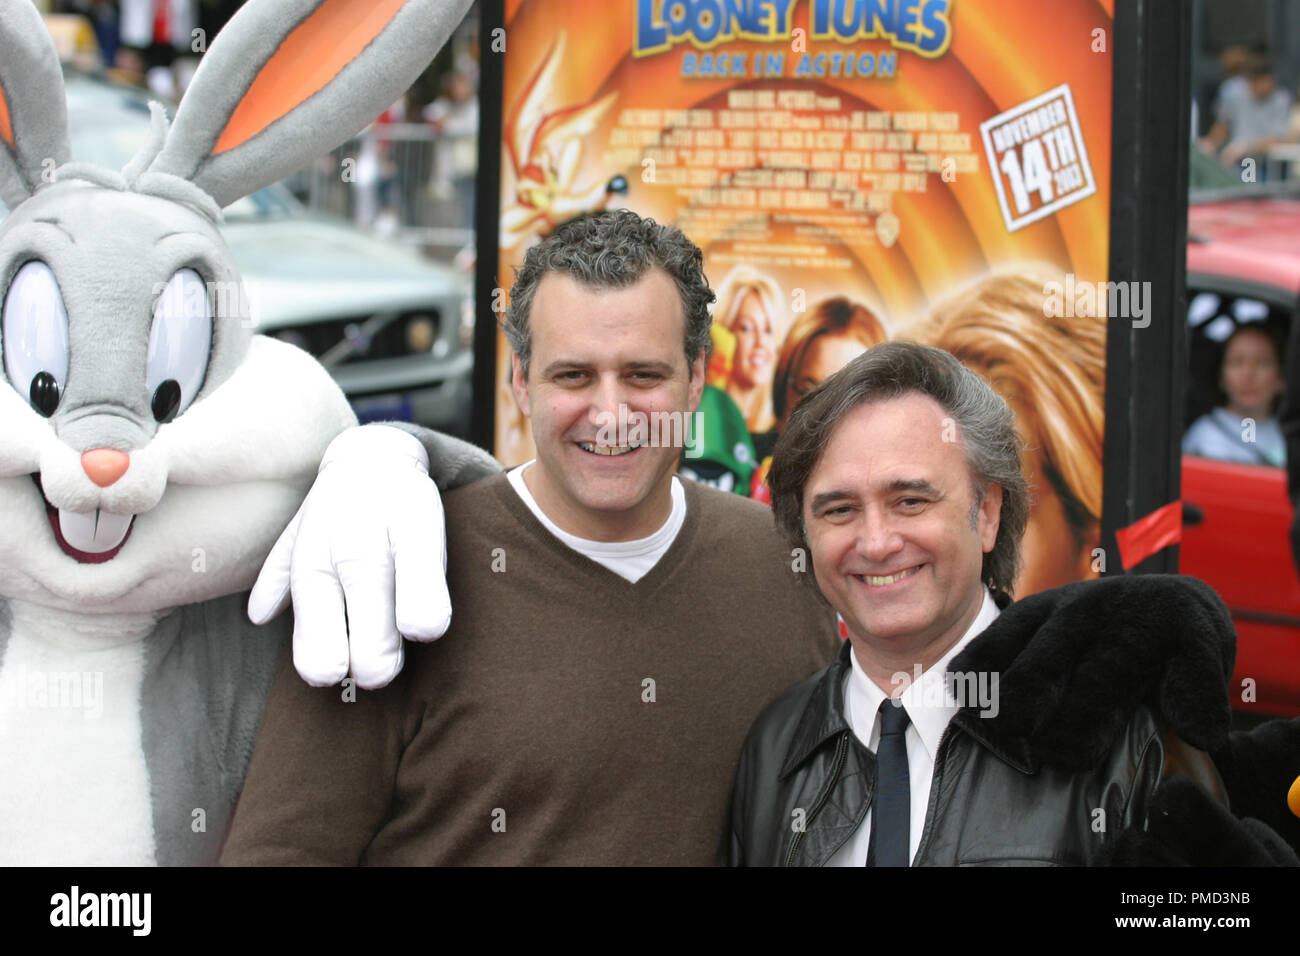 'Looney Tunes: Back in Action' Premiere 11-9-2003 Producer Bernie Goldmann and Director Joe Dante with Bugs Bunny Photo by Joseph Martinez - All Rights Reserved  File Reference # 21596_0025PLX  For Editorial Use Only -  All Rights Reserved - Stock Image